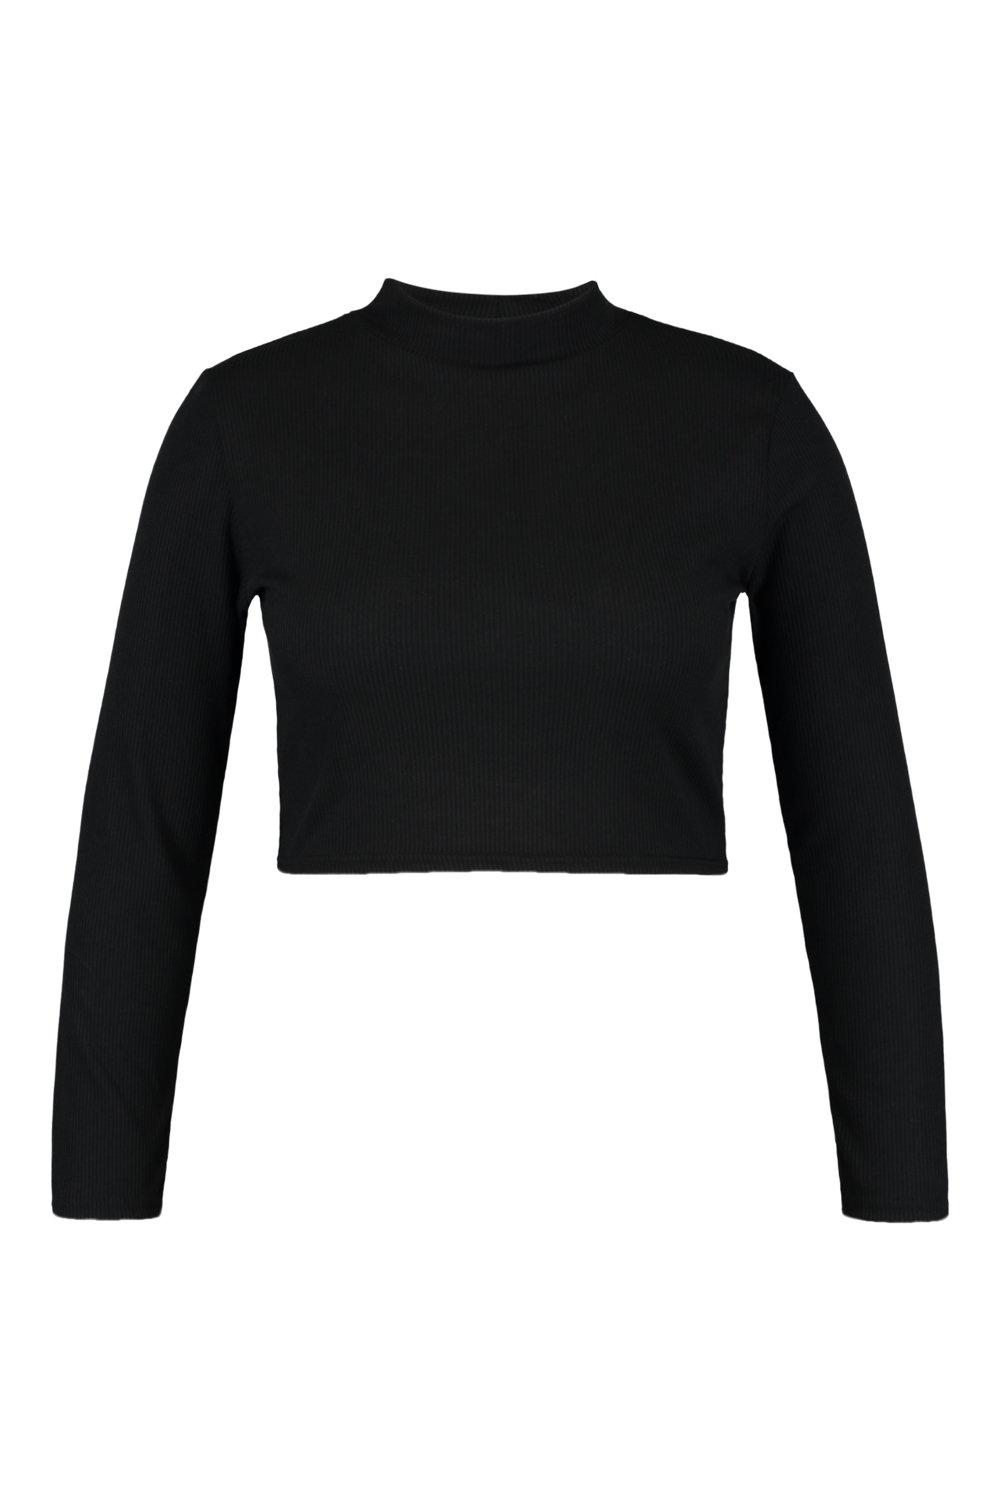 High Rib Neck Plus Top Sleeve Long black 0w7pUq